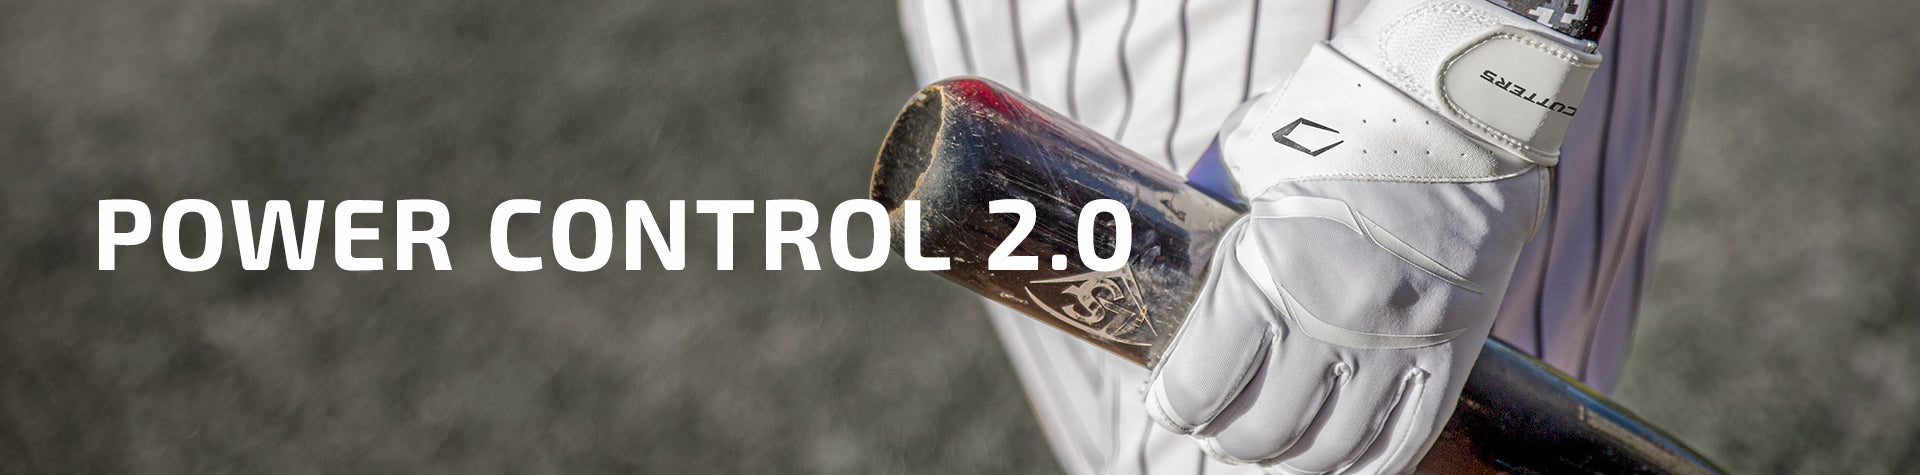 Baseball-Softball Power Control 2.0 Gloves Collection Header Image